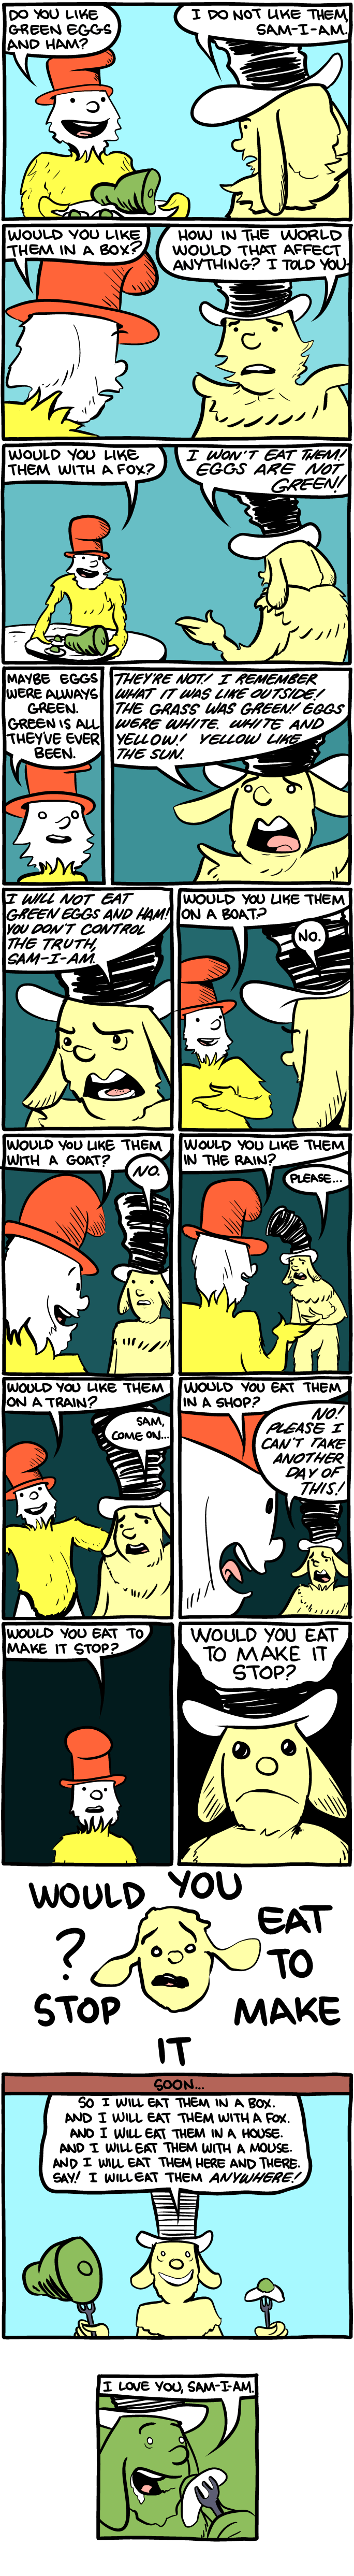 the dark side of the seuss. www.smbc-comics.com. T we we 'men HOW THE WORLD WOULD THAT AFFECT T TOLD C' maet' Re 407/ I TUE GRASS awf WOULD YOU EAT TO MAKE IT M